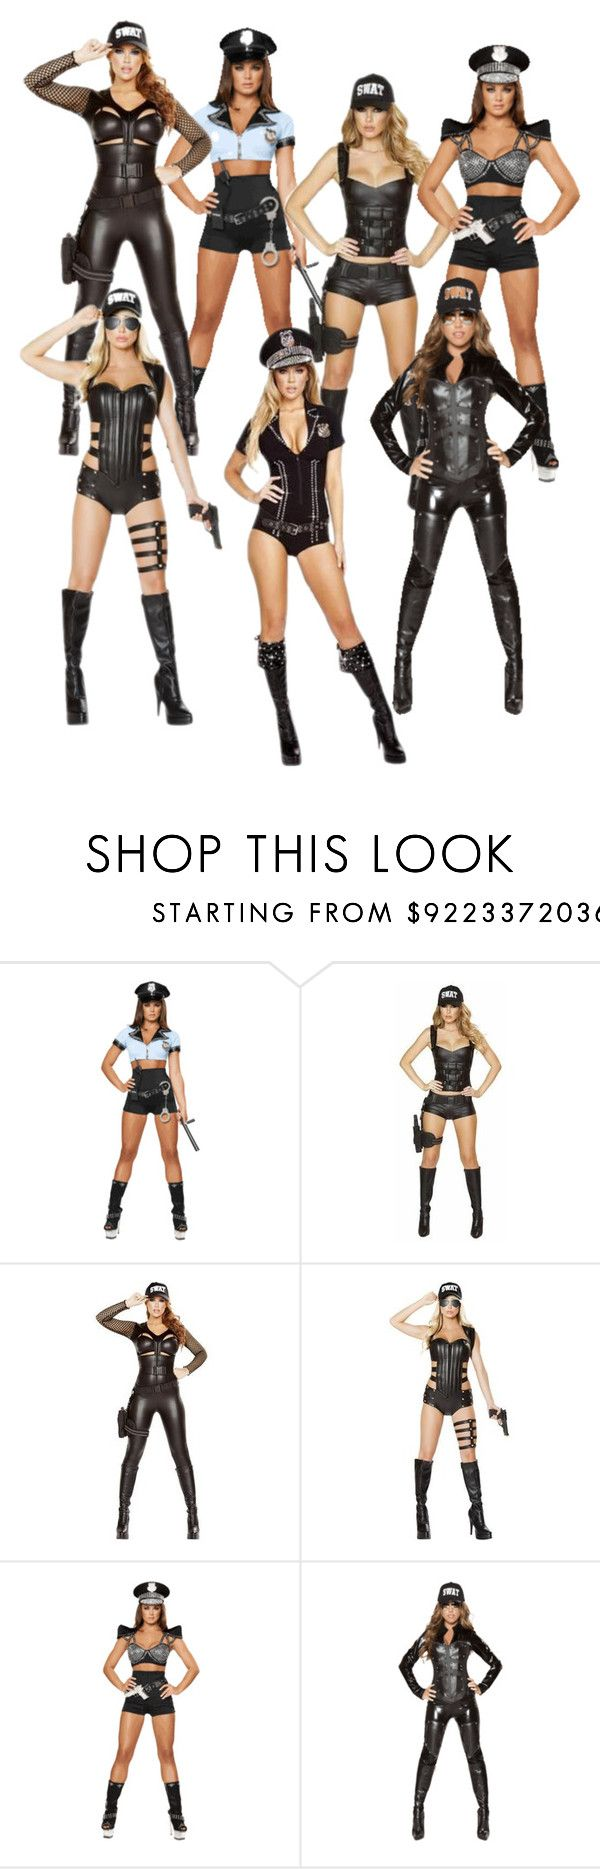 """""""Sexy Police Halloween Costumes @Musotica.com"""" by musotica ❤ liked on Polyvore"""